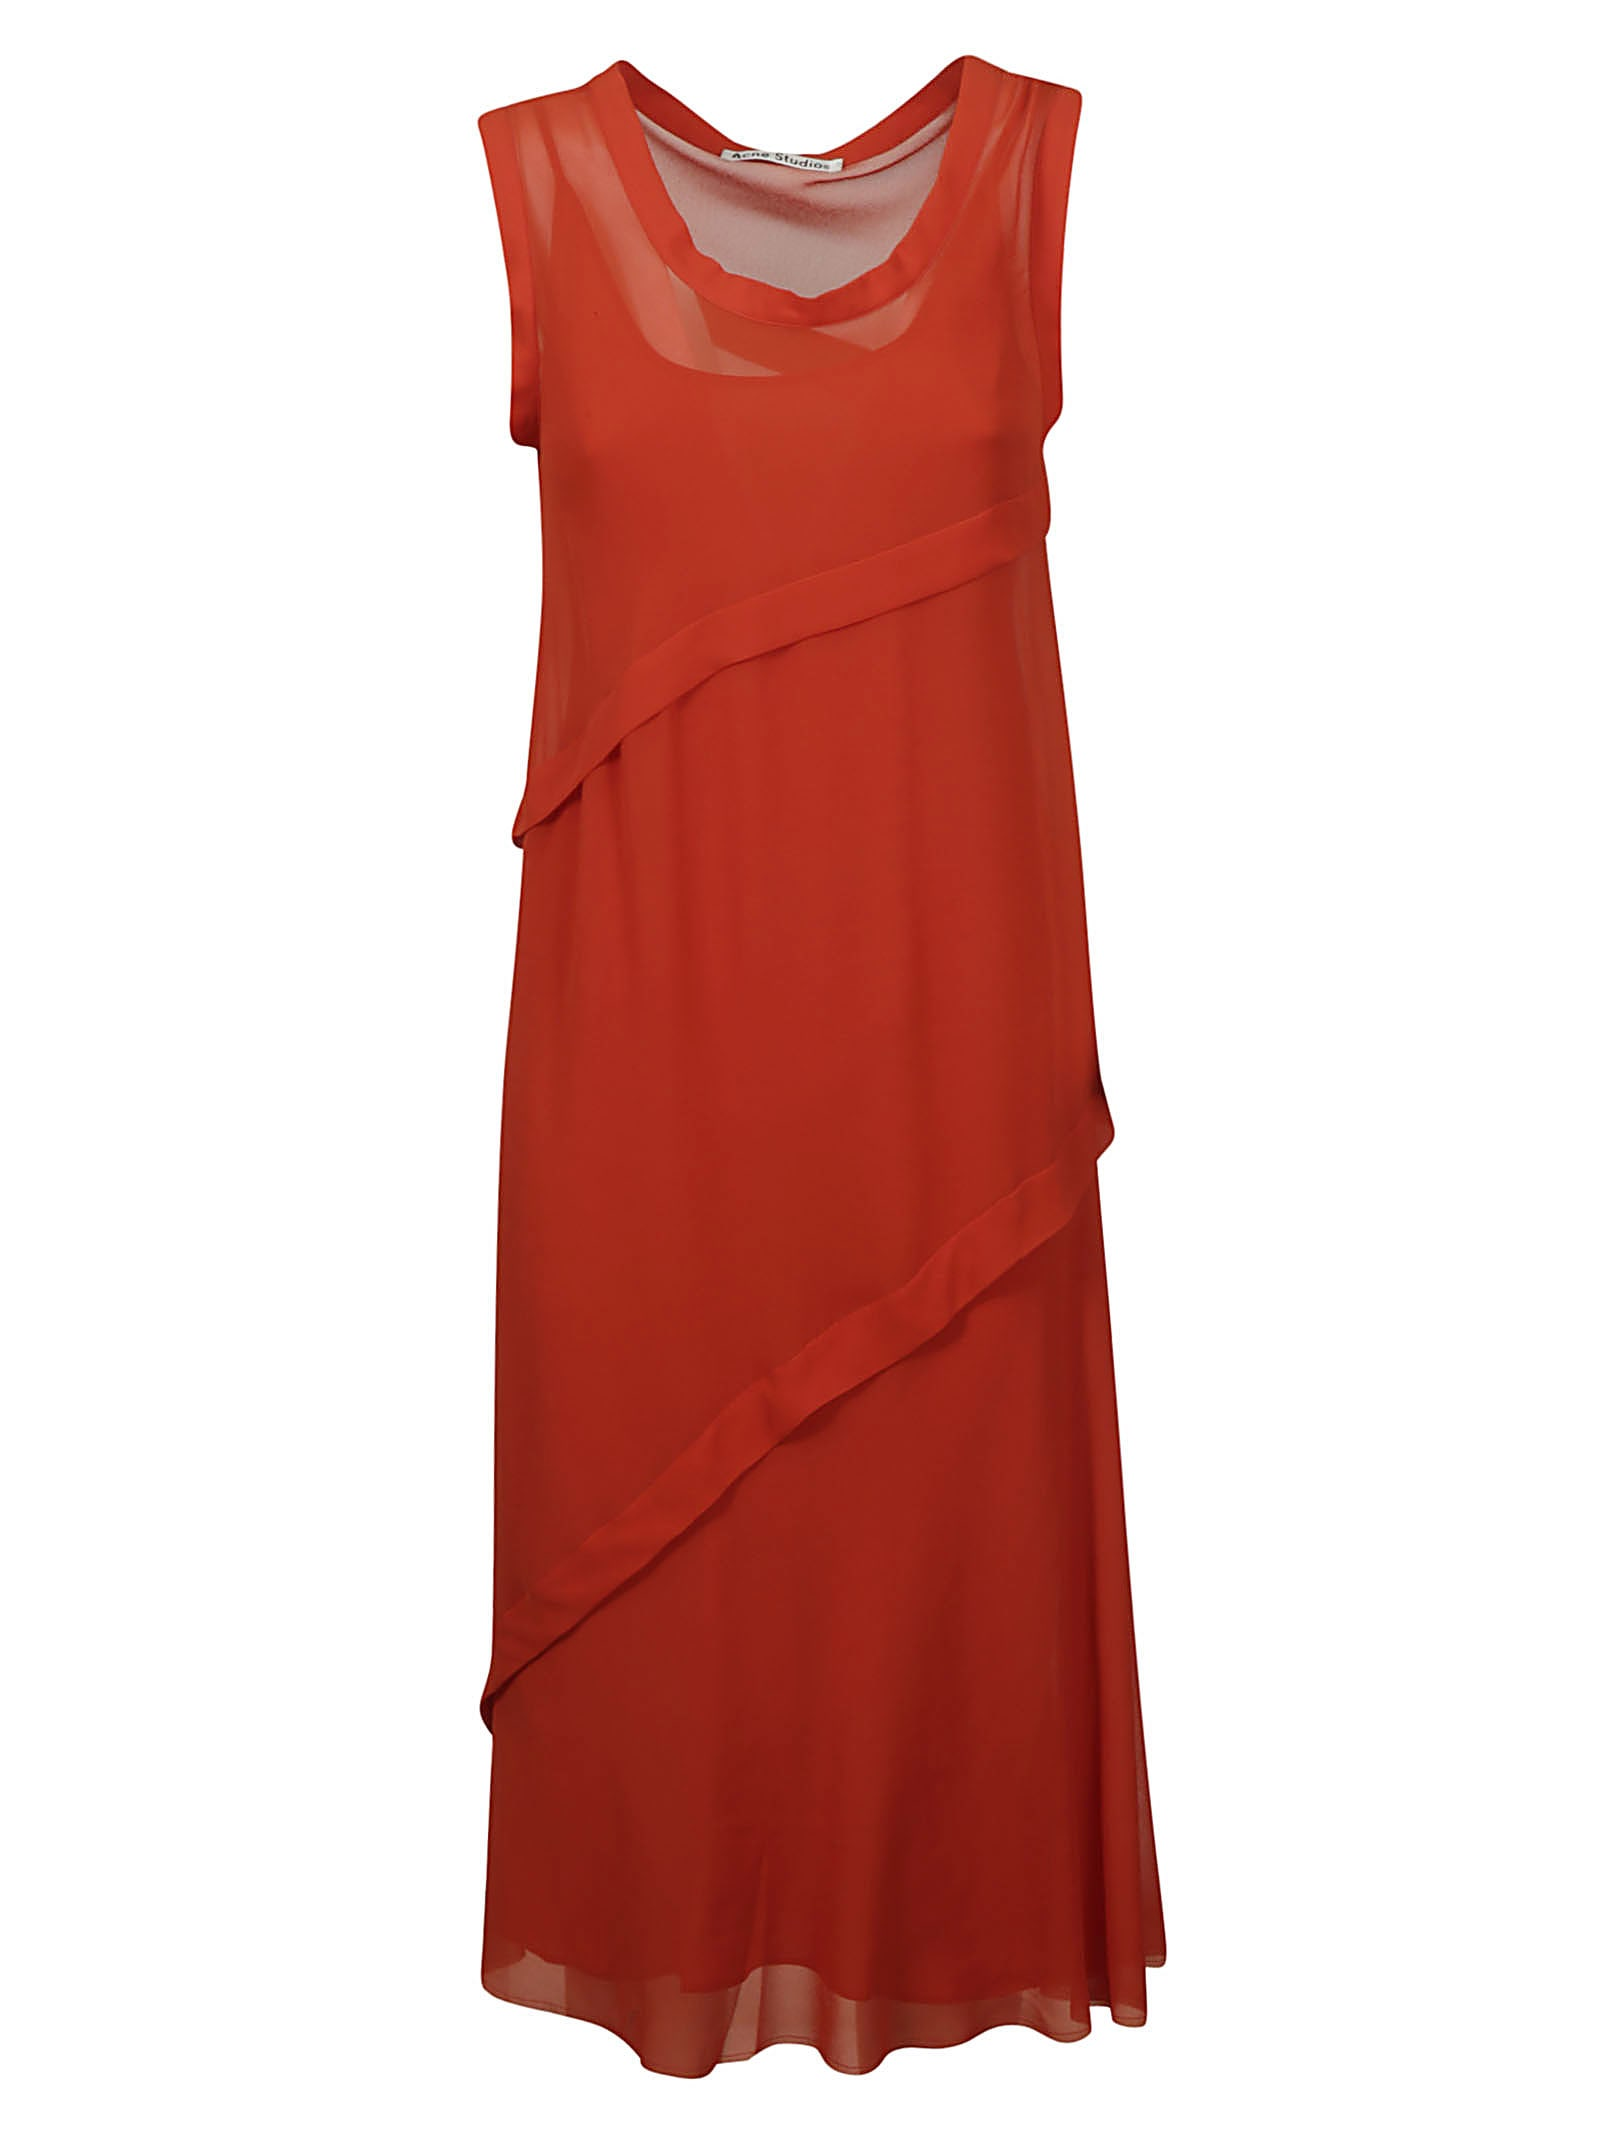 Buy Acne Studios Layered Sleeveless Lace Dress online, shop Acne Studios with free shipping